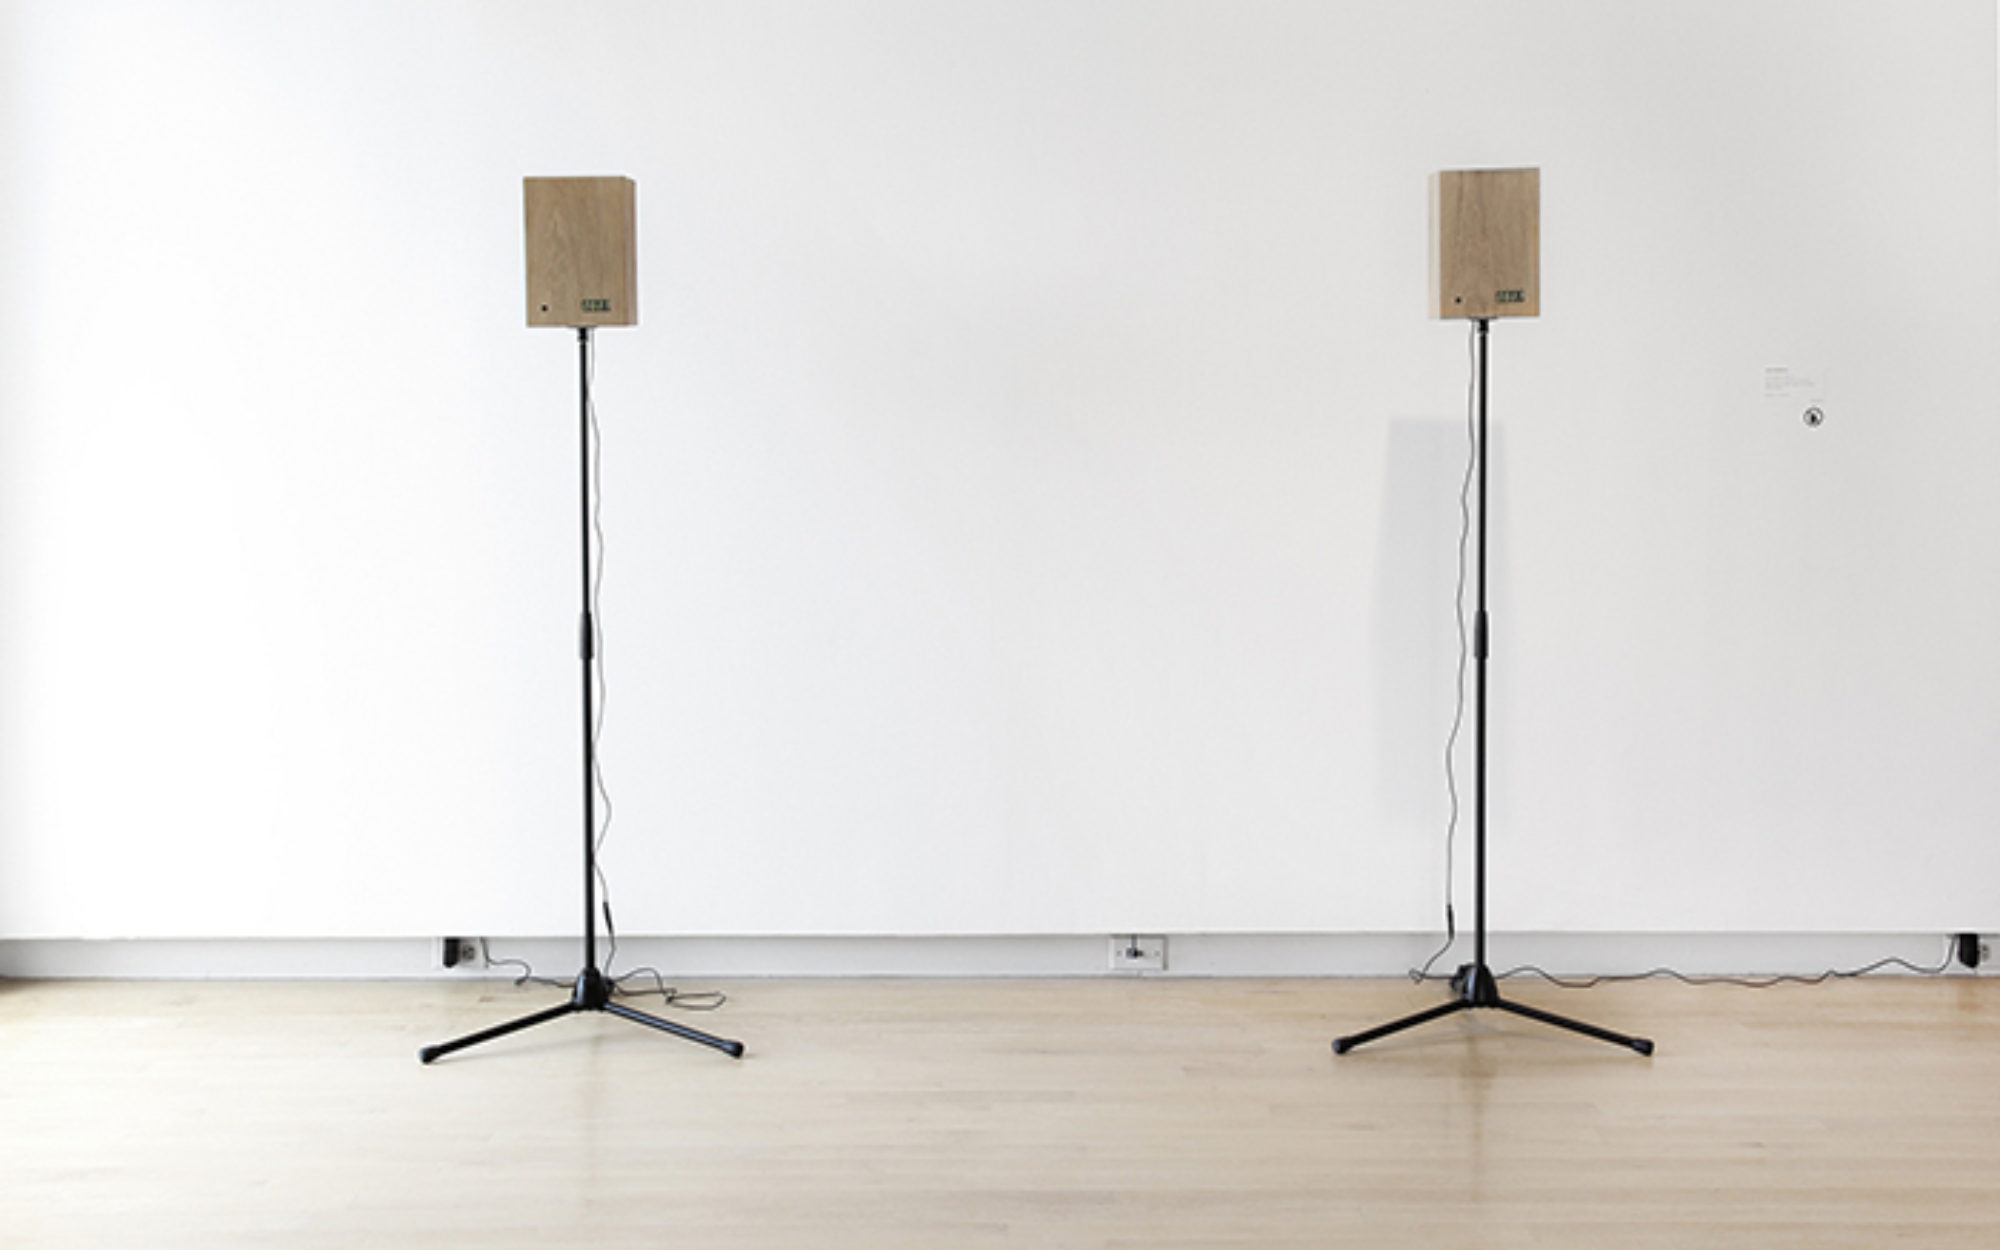 Two tall speakers stand in a gallery